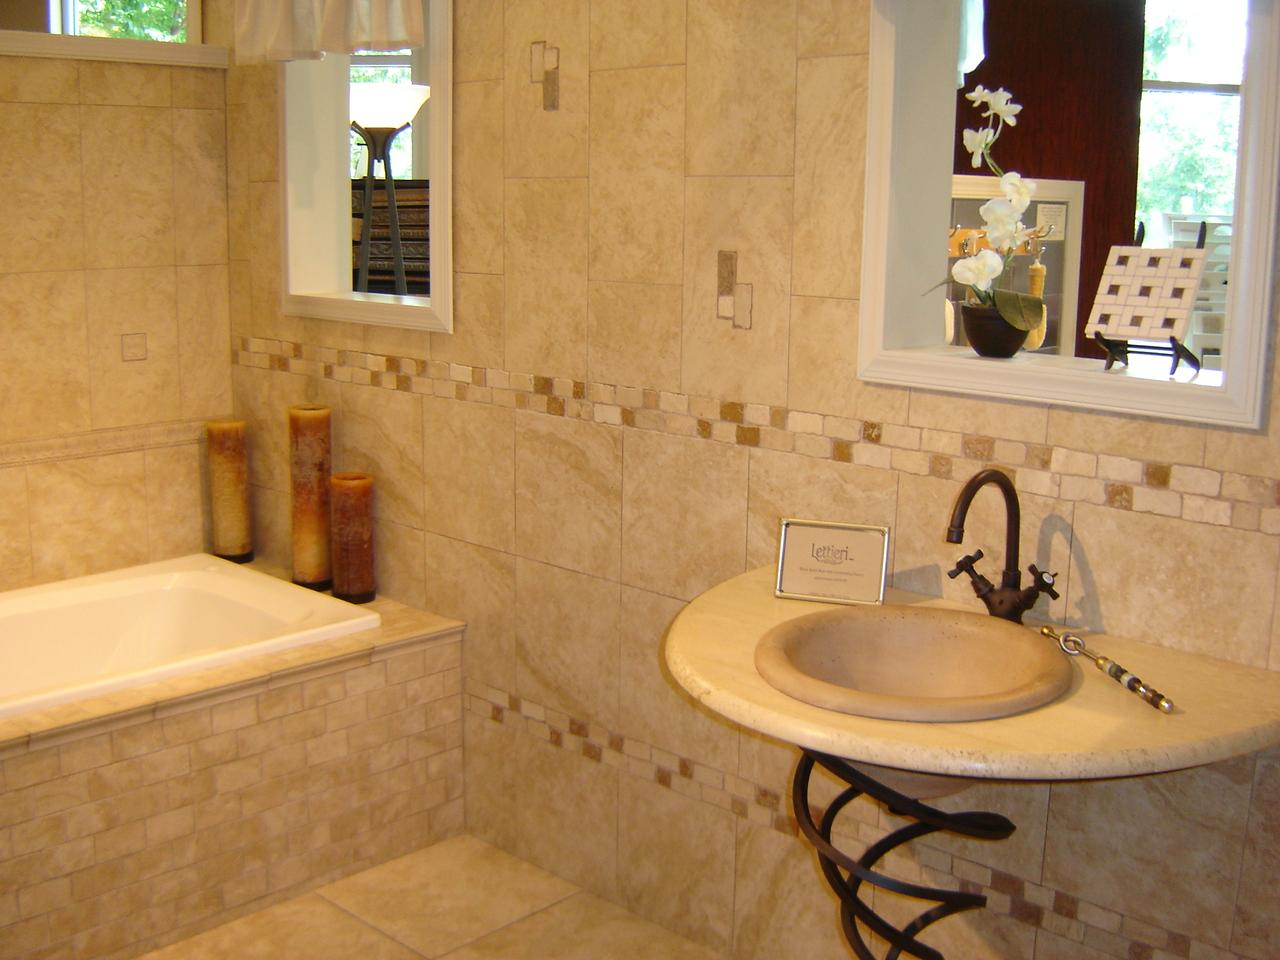 Best Kitchen Gallery: Bathroom Tile Designs For Small Bathrooms Large And Beautiful of Bathroom Tile Designs For Small Bathrooms  on rachelxblog.com